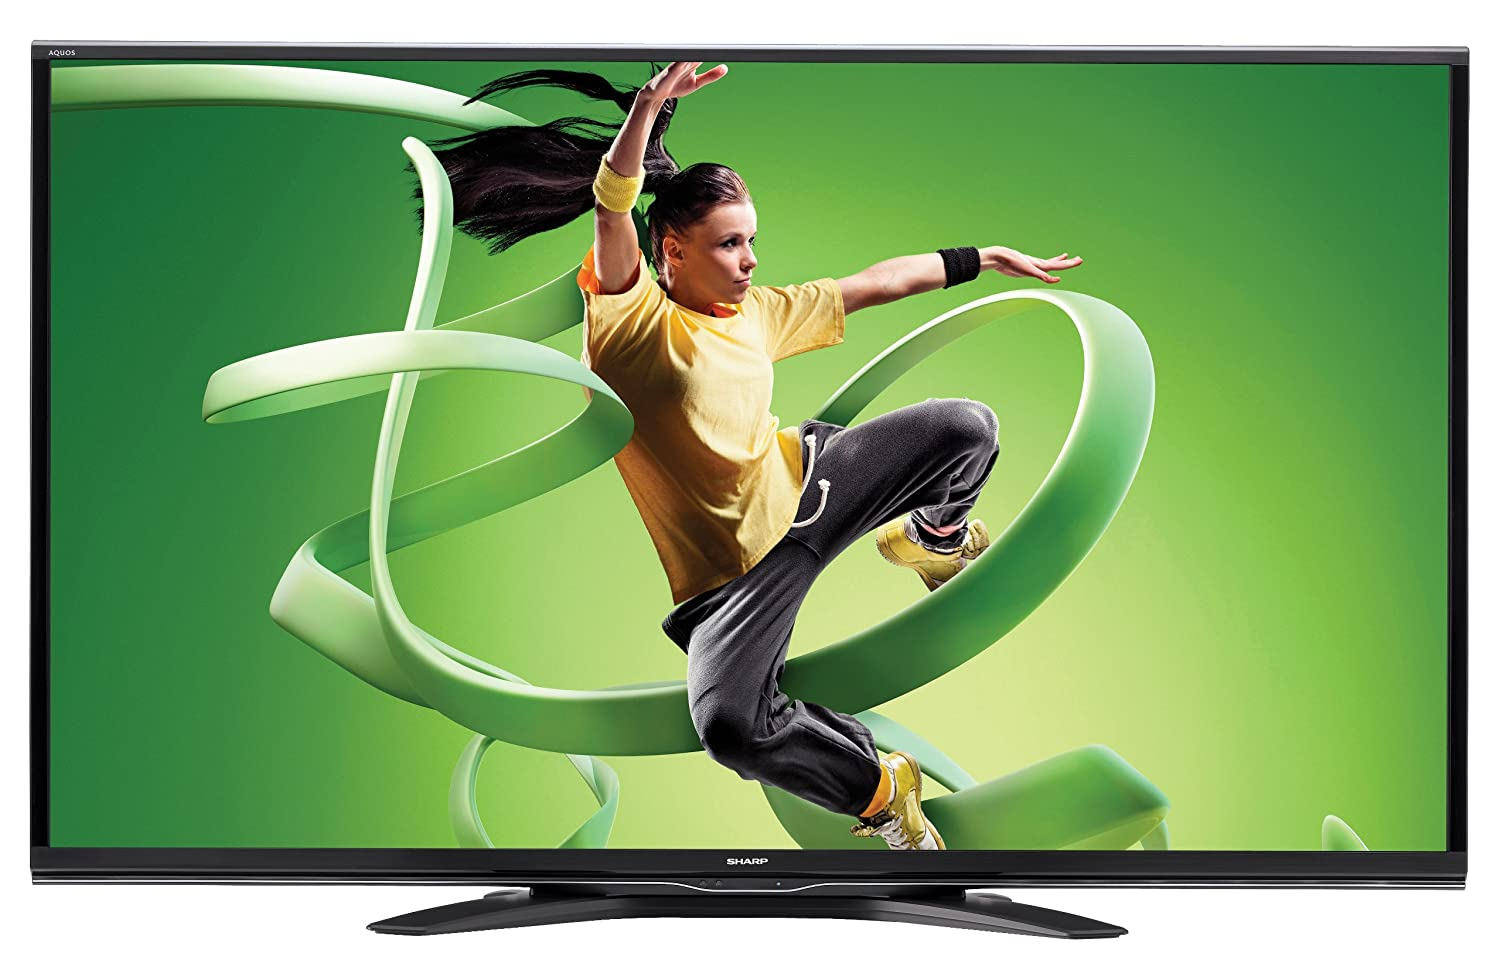 sharp-lc-60eq10u-60-inch-aquos-q-1080p-240hz-smart-led-tv-certified-refurbished